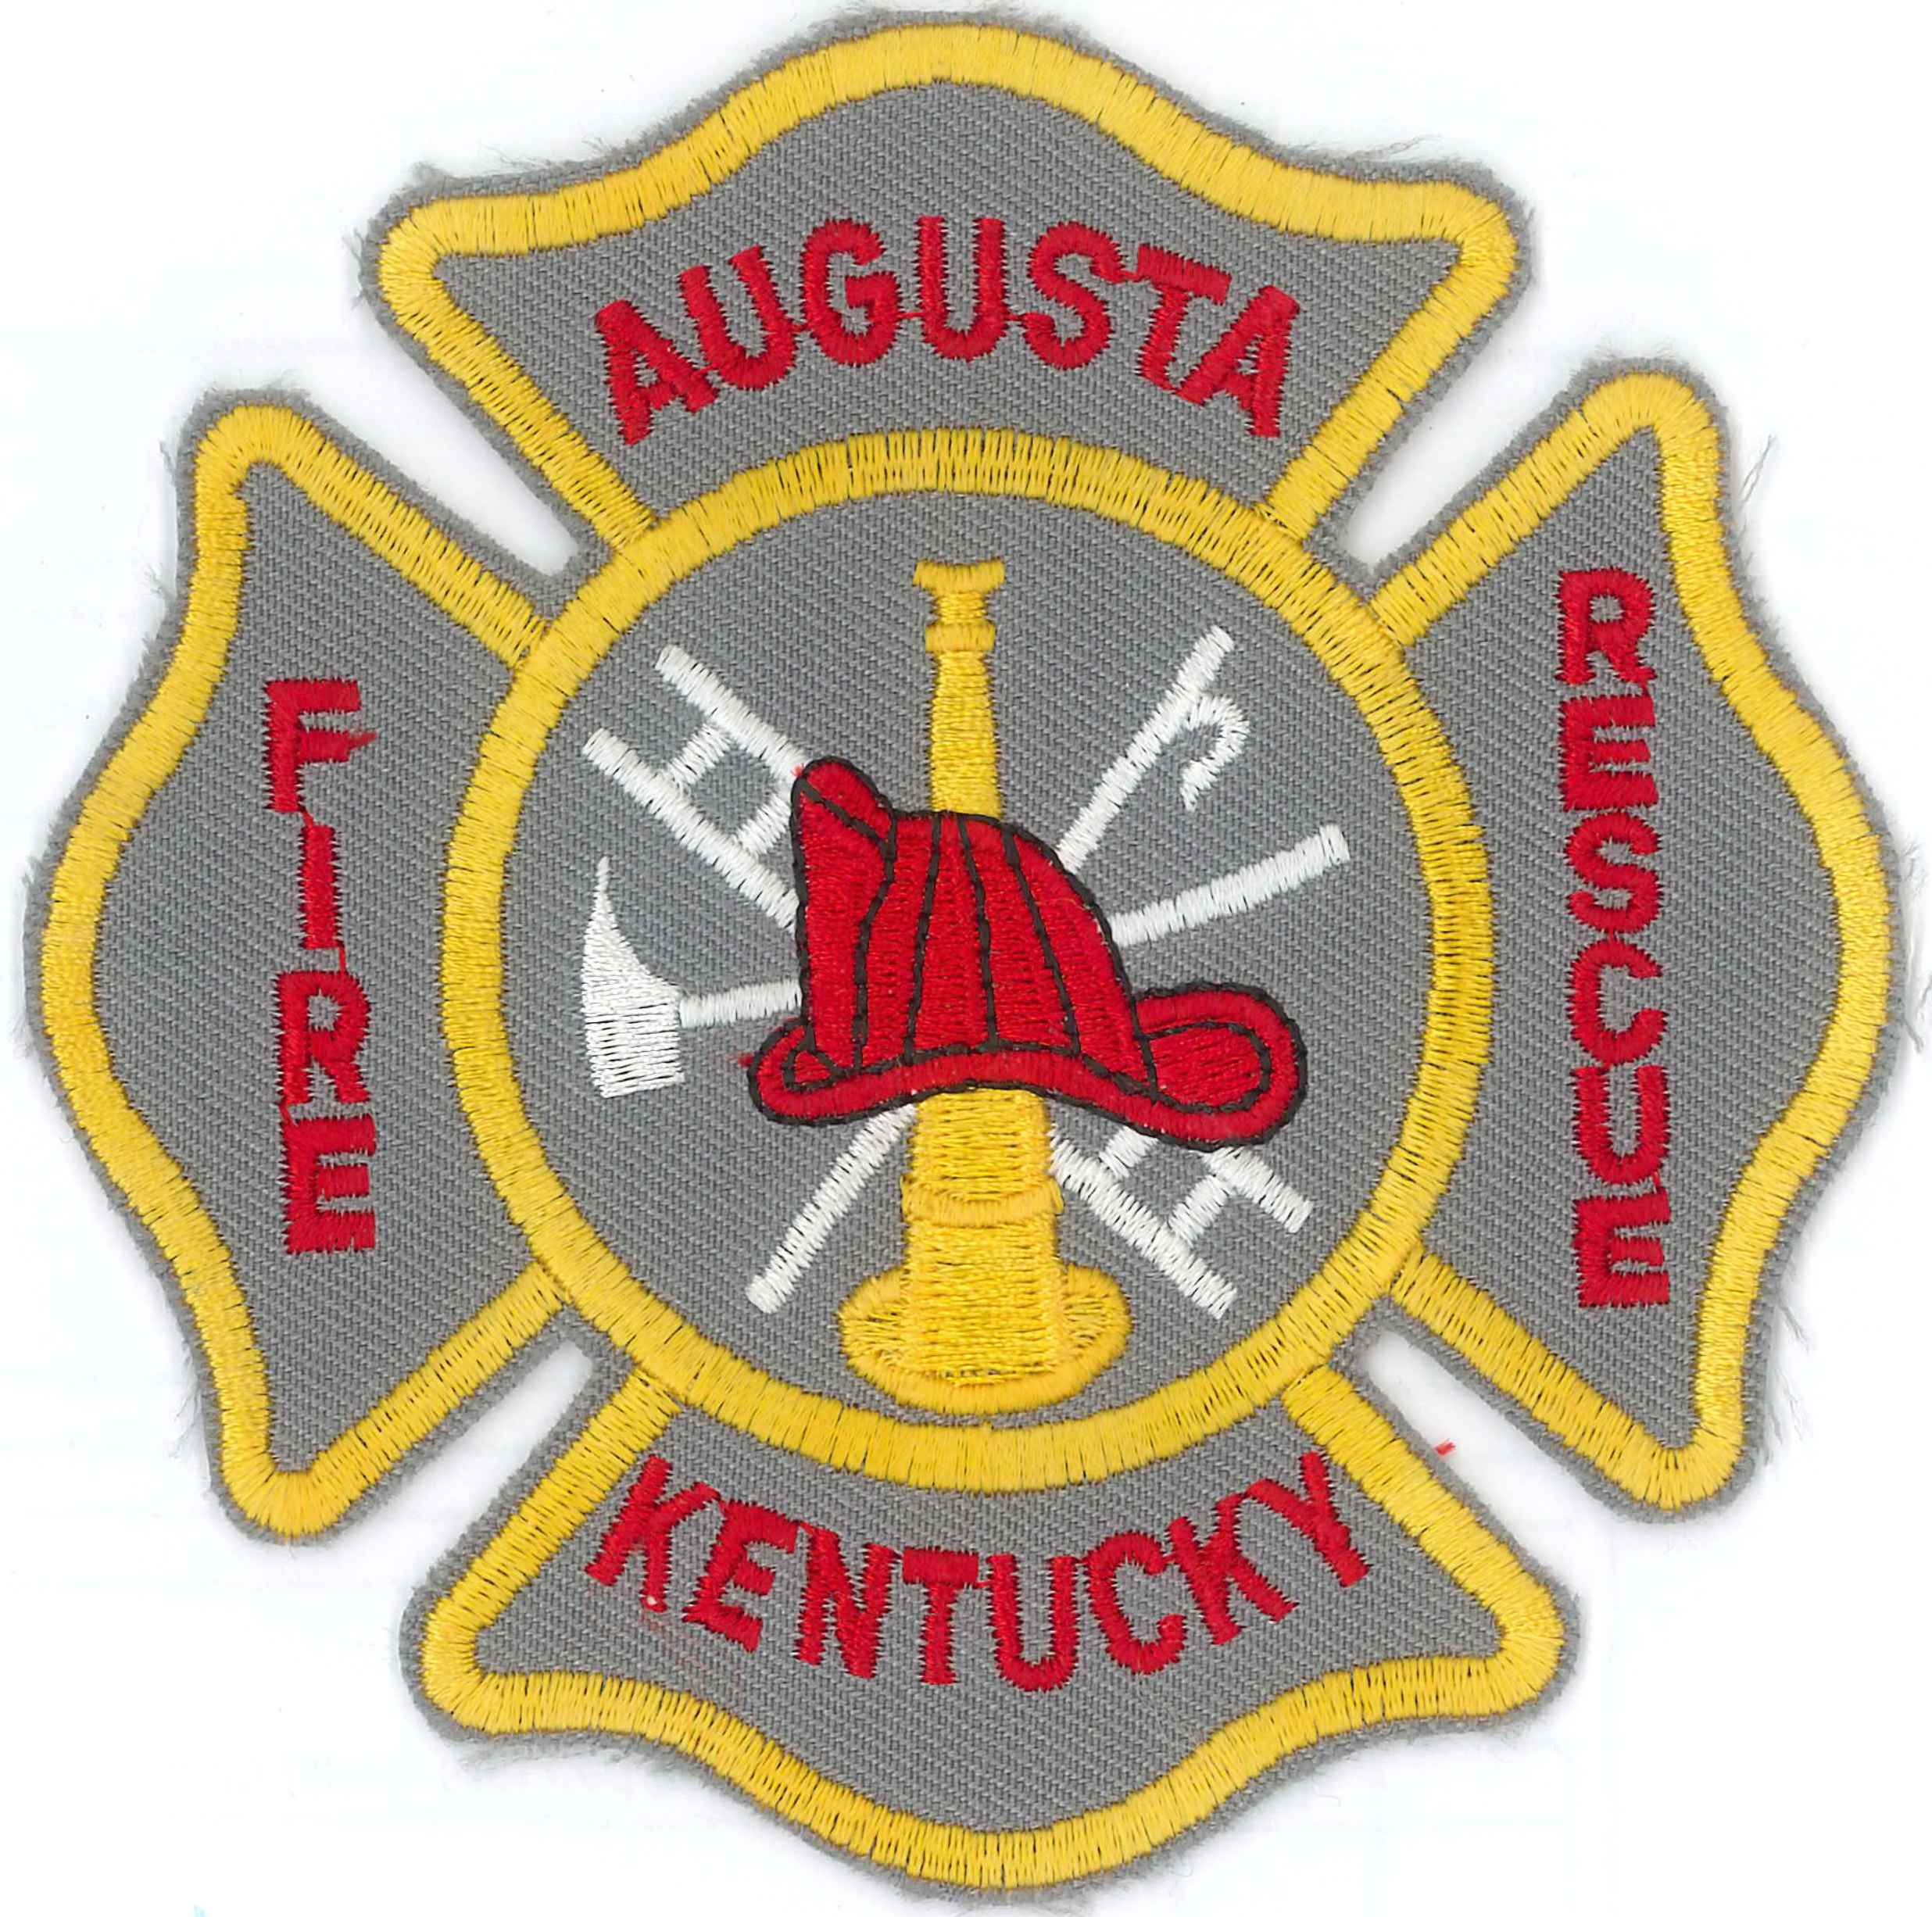 stations/Augusta-patch_0001.jpg